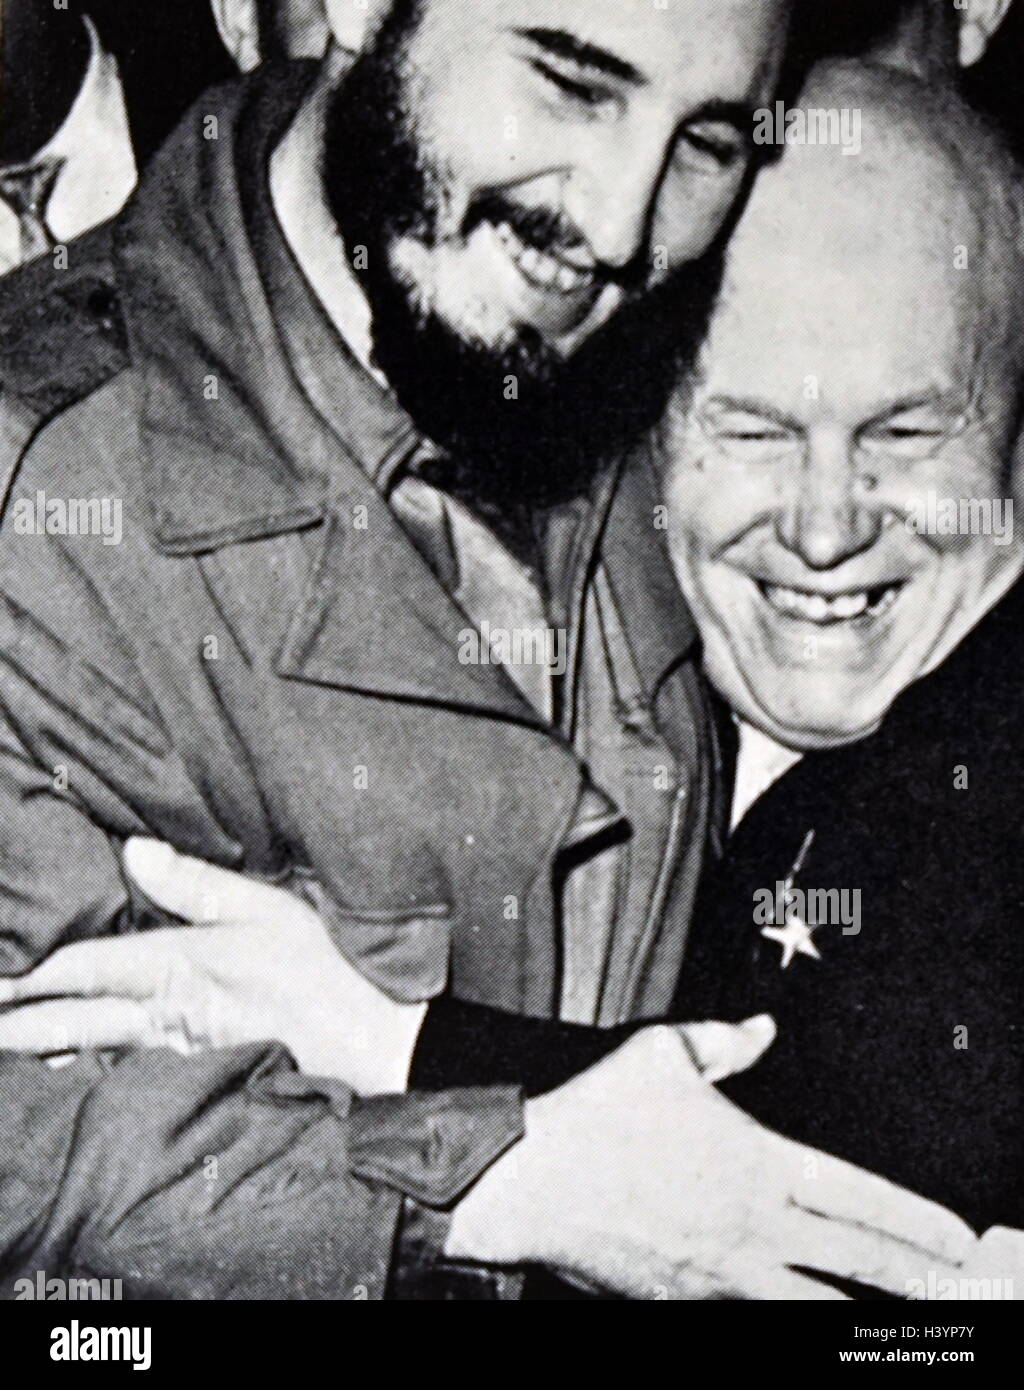 Photograph of Nikita Khrushchev with Fidel Castro - Stock Image